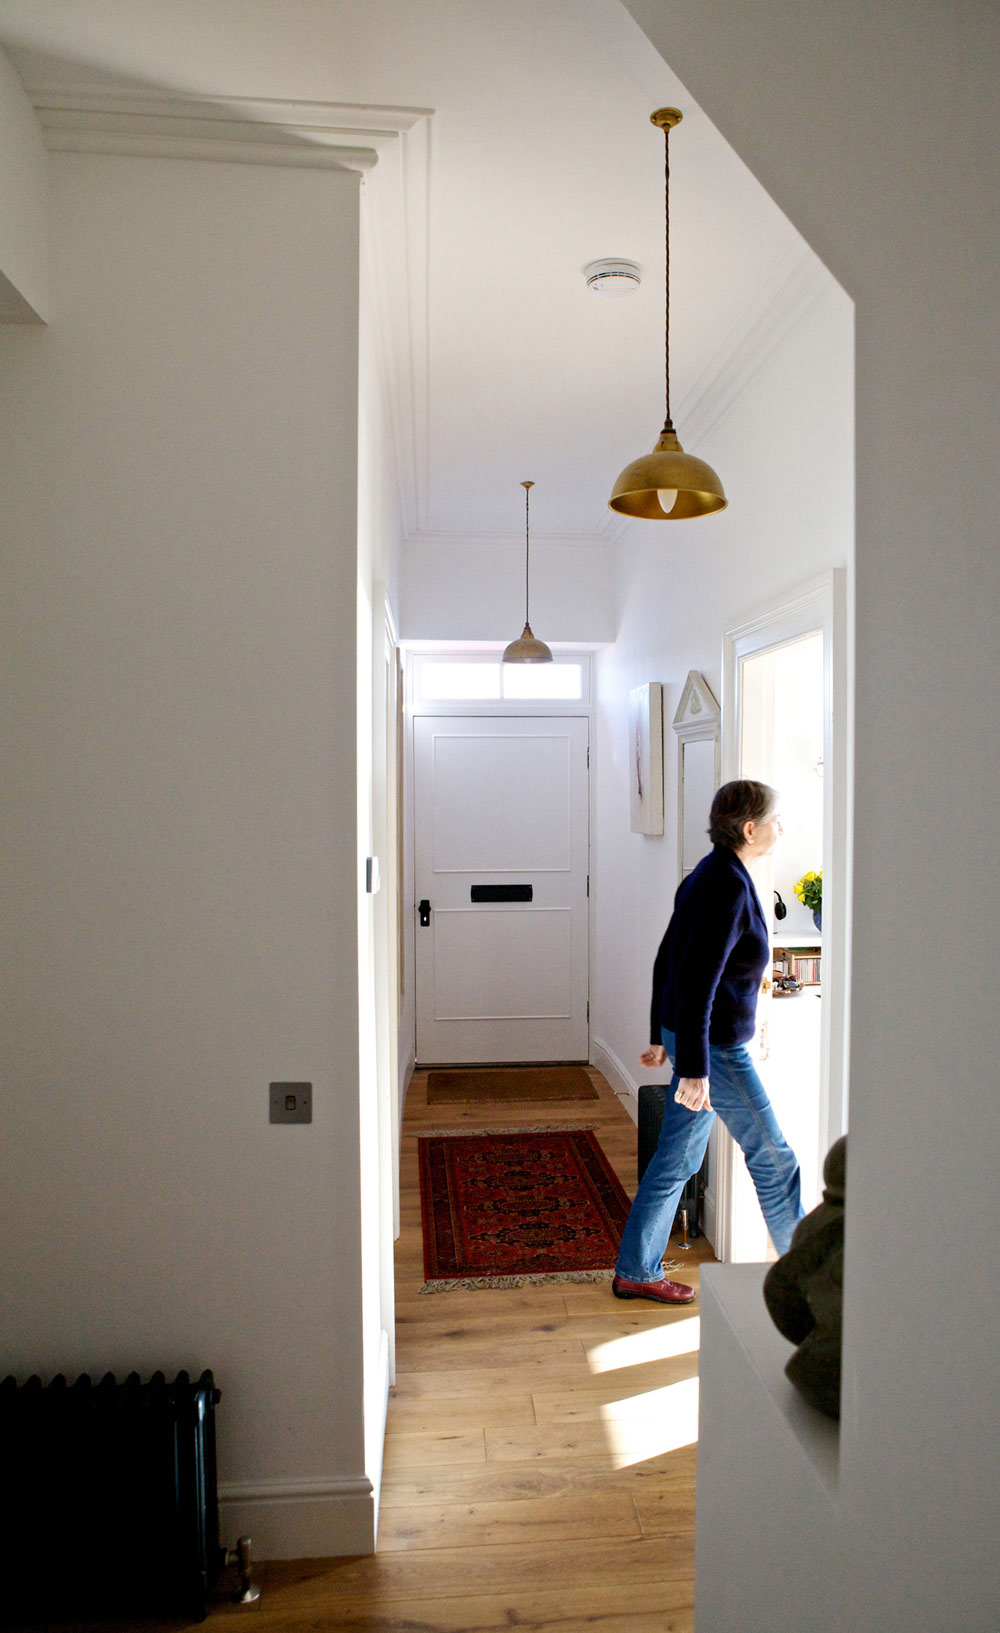 Entrance Hall, The Sheiling, Overlooking Loch Fyne, Scotland by APD Architecture